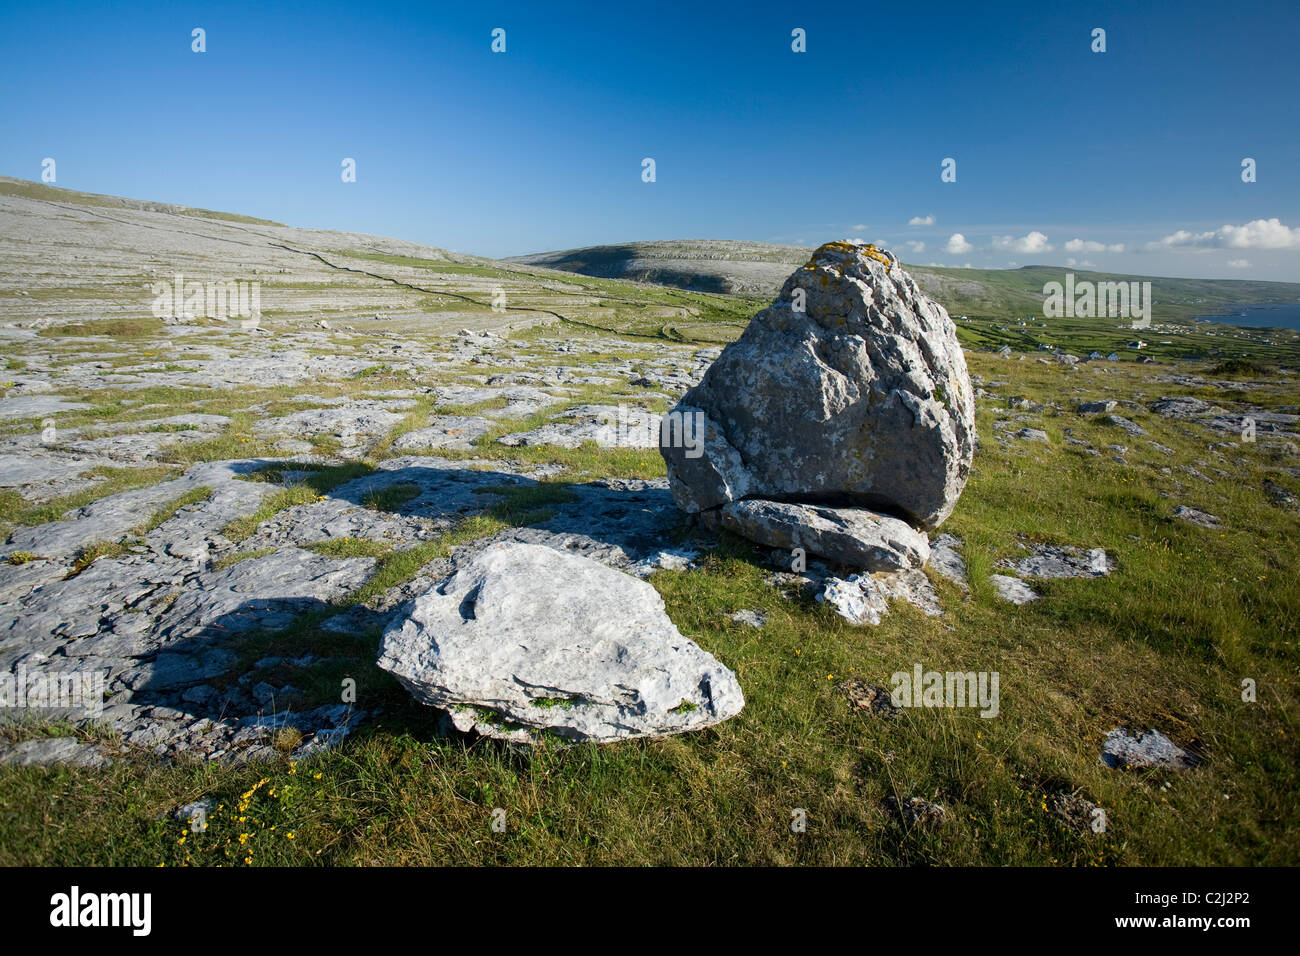 Limestone pavement and glacial erratic boulders in The Burren, County Clare, Ireland. - Stock Image